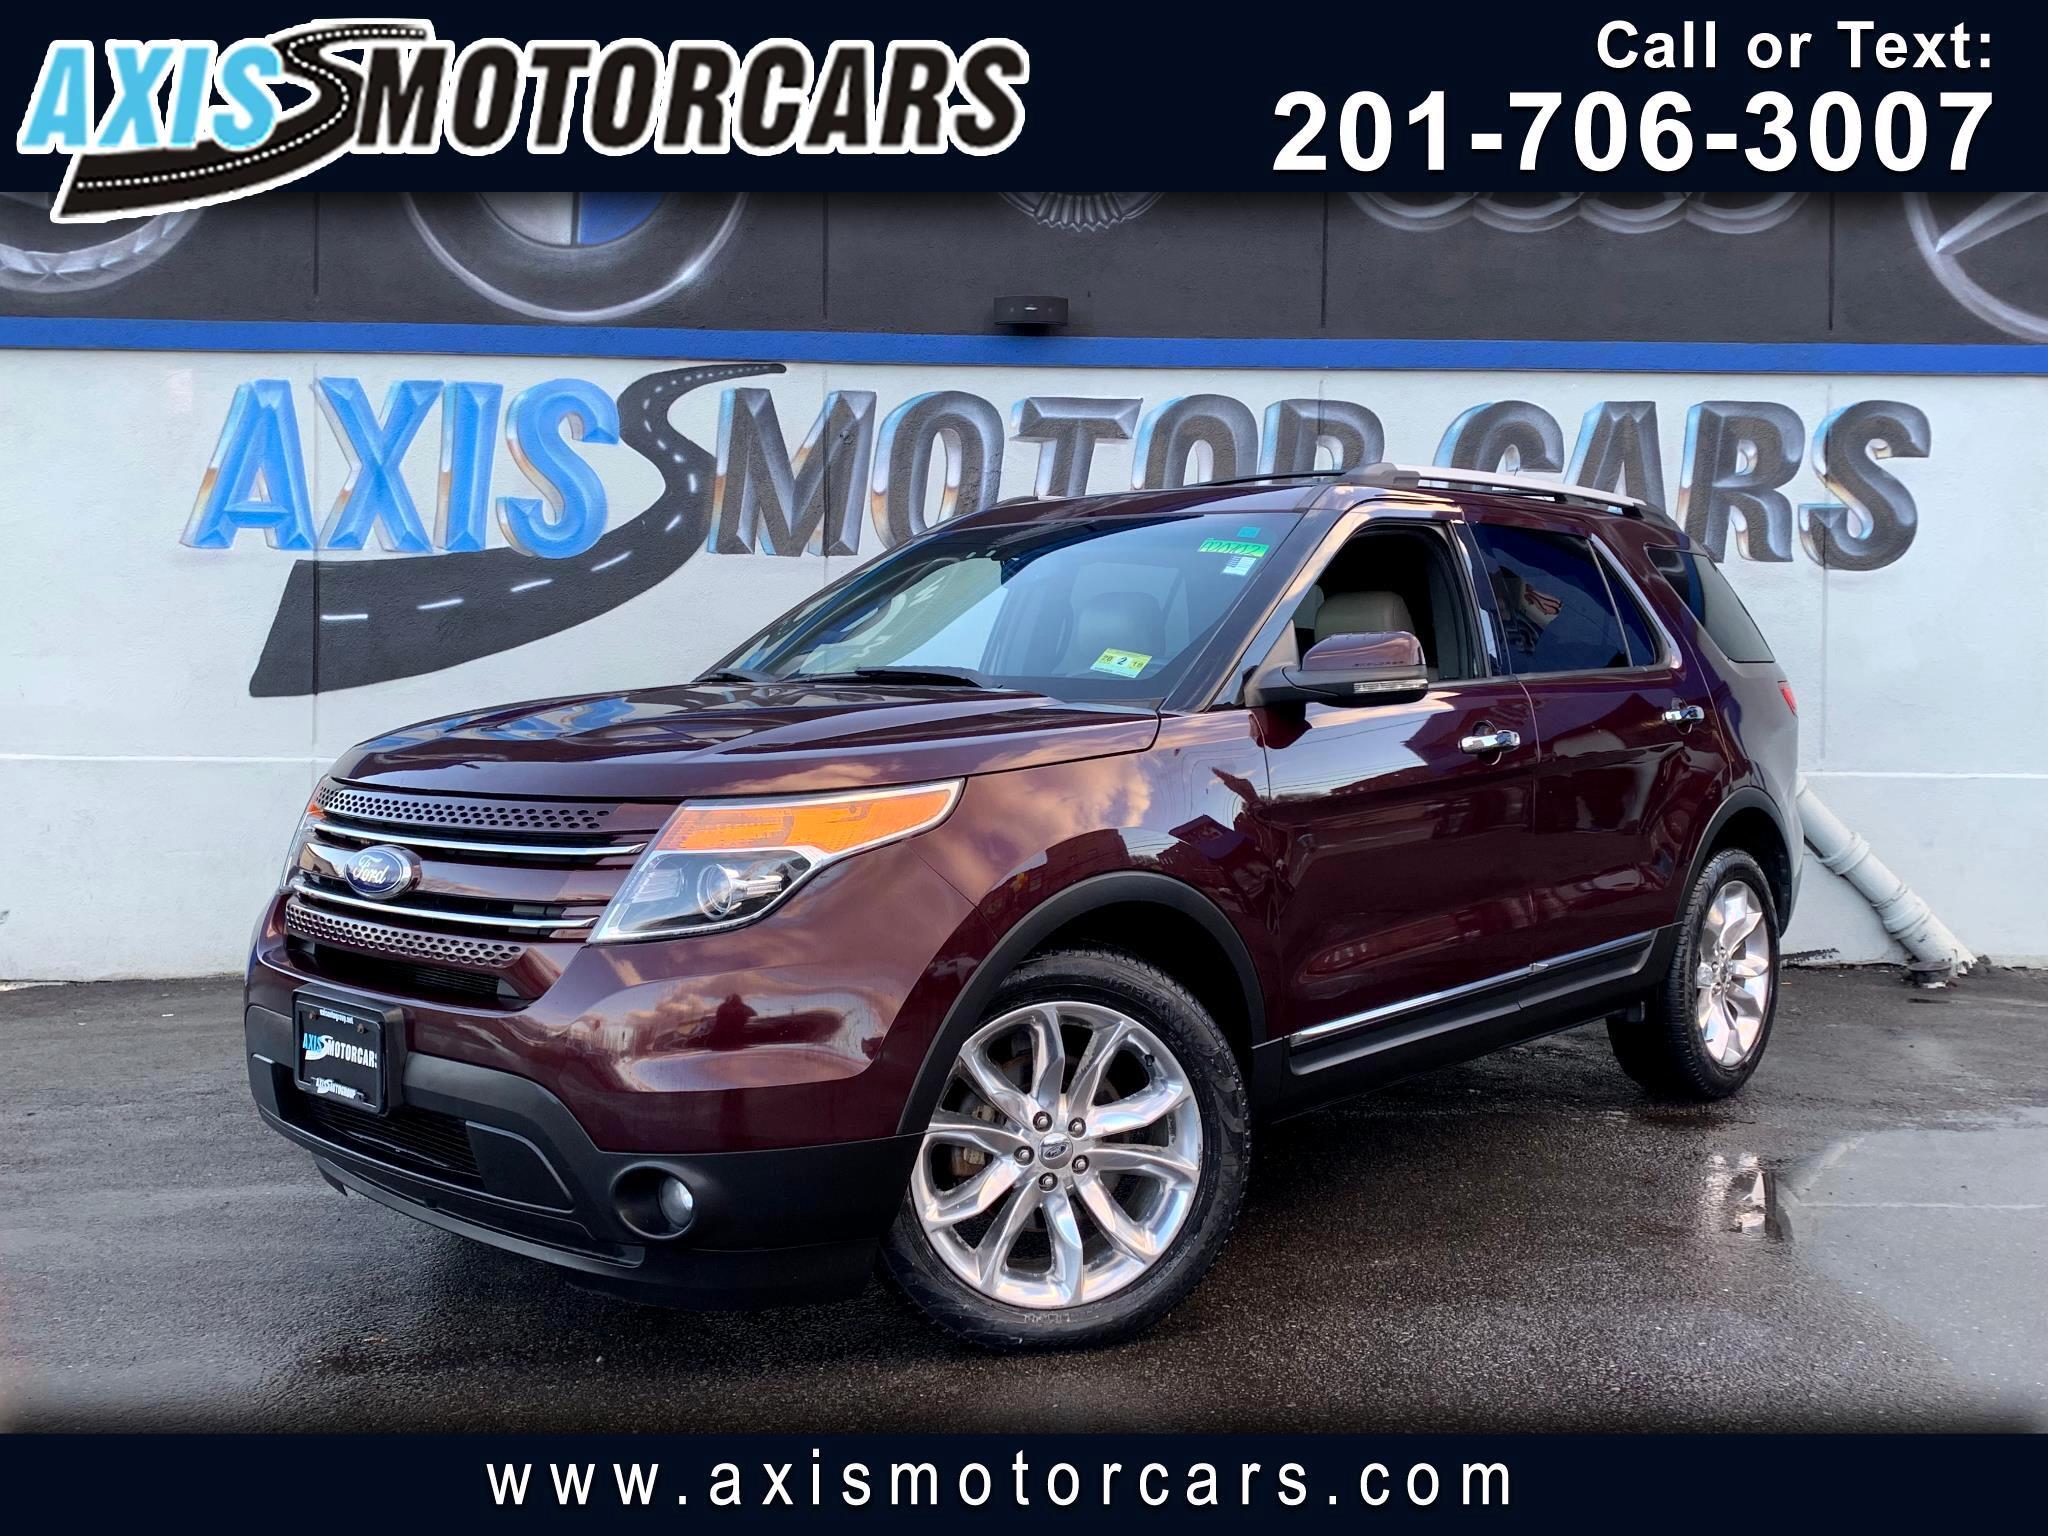 2011 Ford Explorer Limited w/Navigation Bakup Camera Panoramic Roof